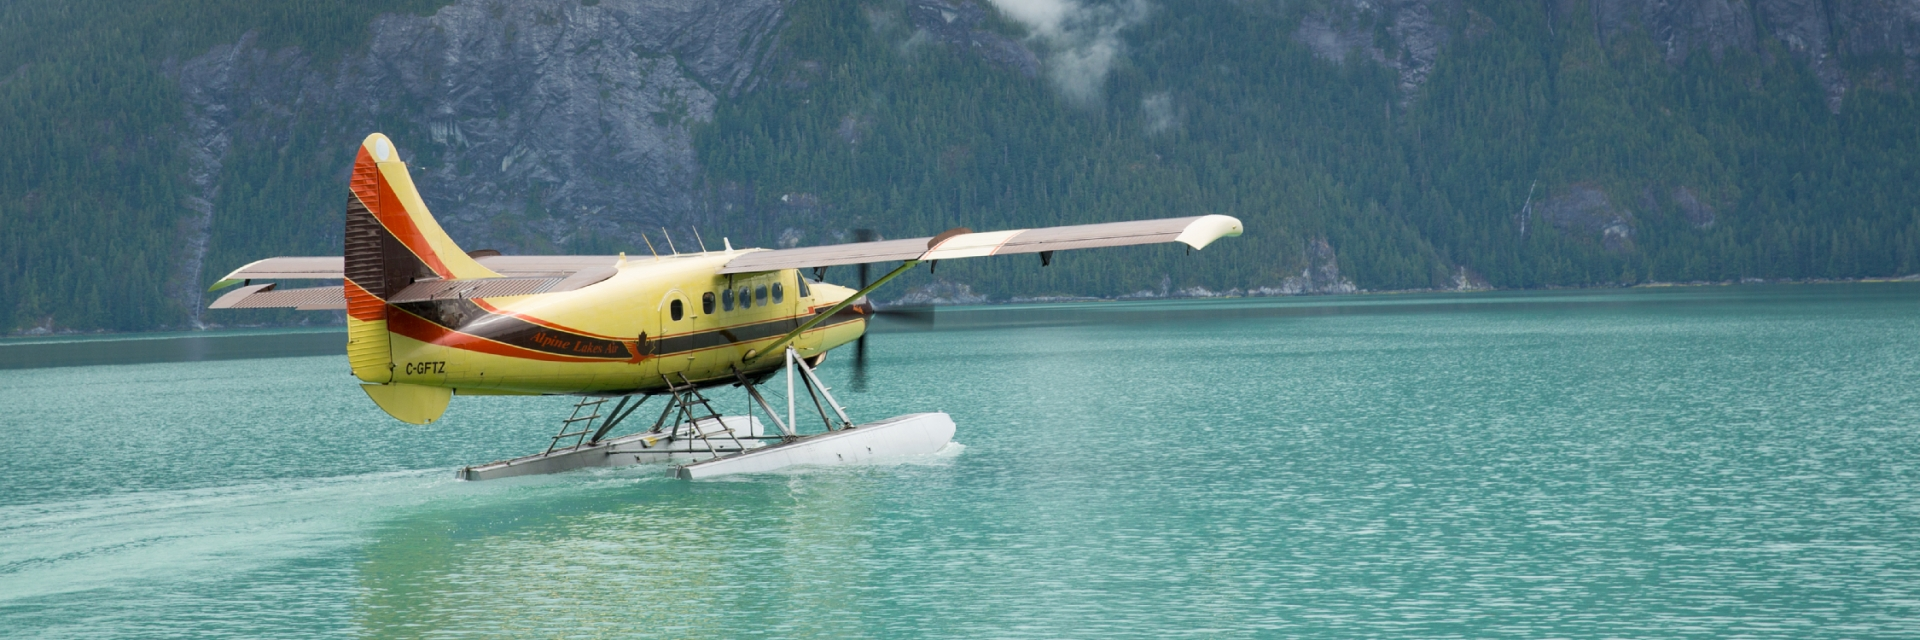 A yellow and red sea plane sitting in a bright blue lake